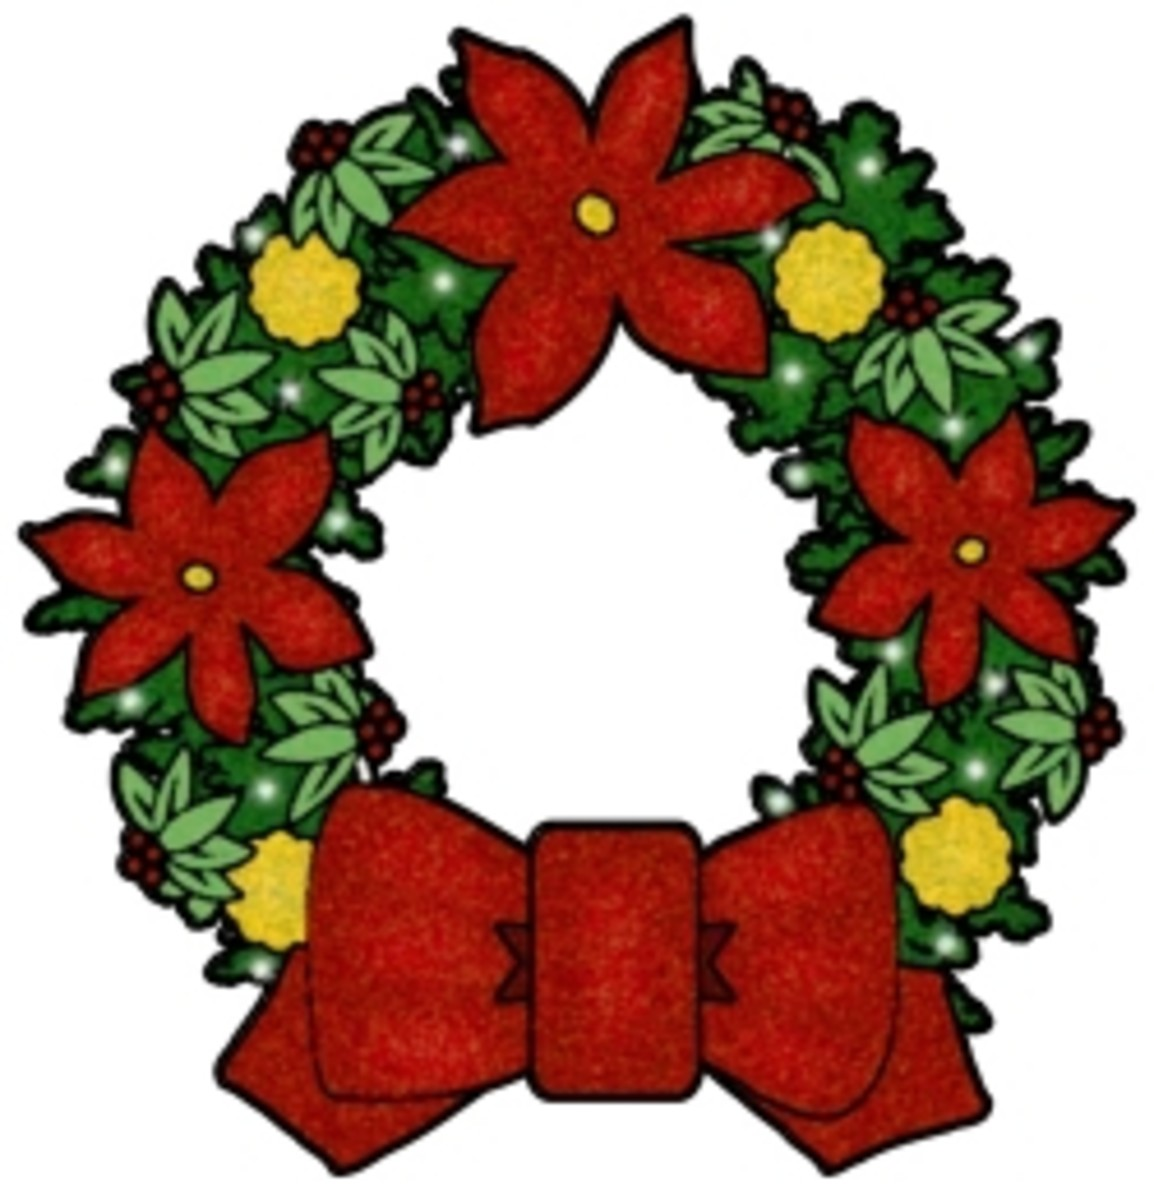 Free Christmas Clip Art Images - Nativity, Wreaths, Trees & More!